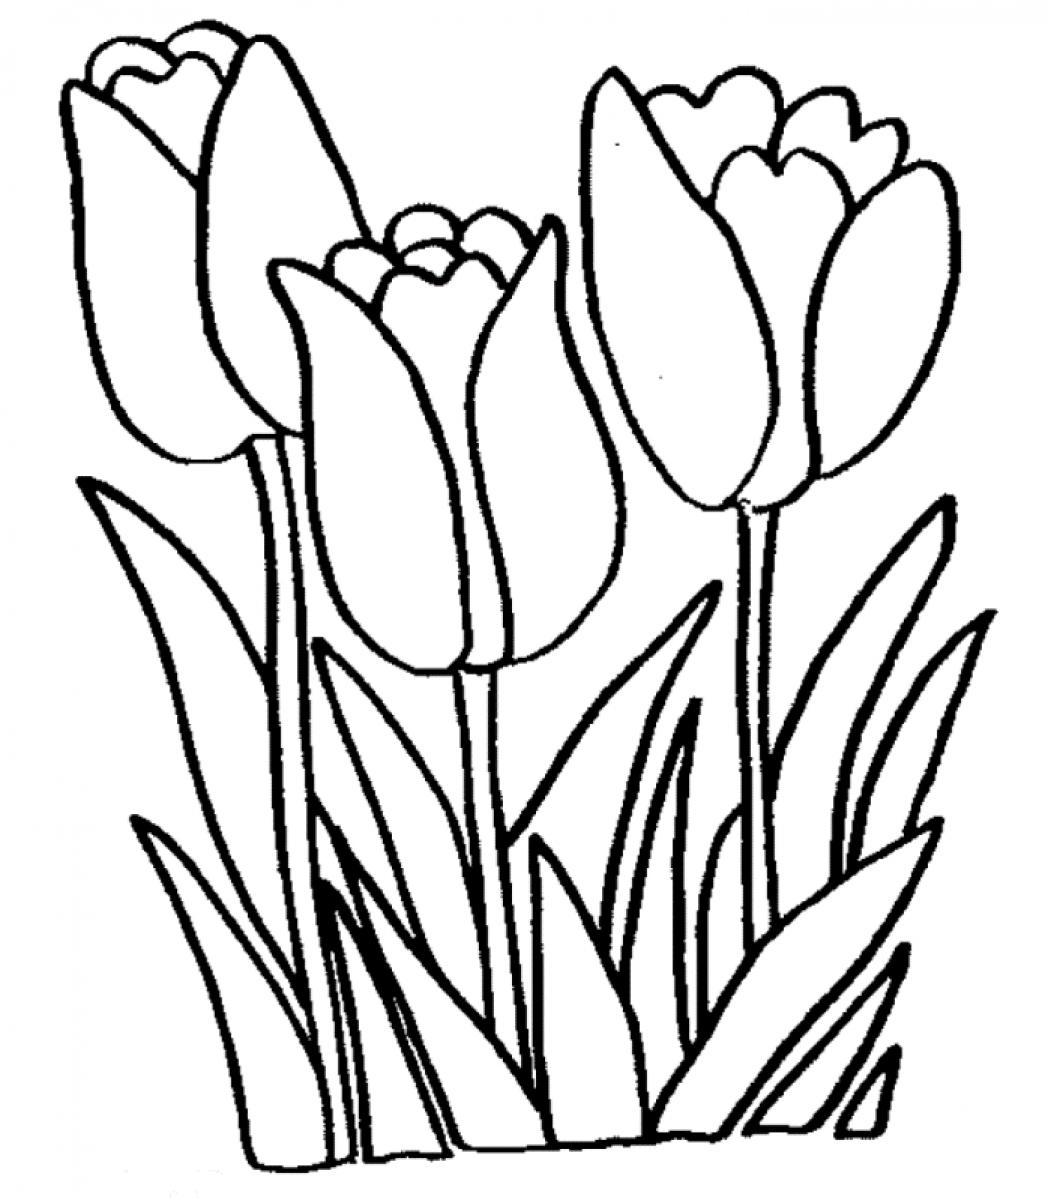 Colouring Pages To Print For Free : Free printable tulip coloring pages for kids